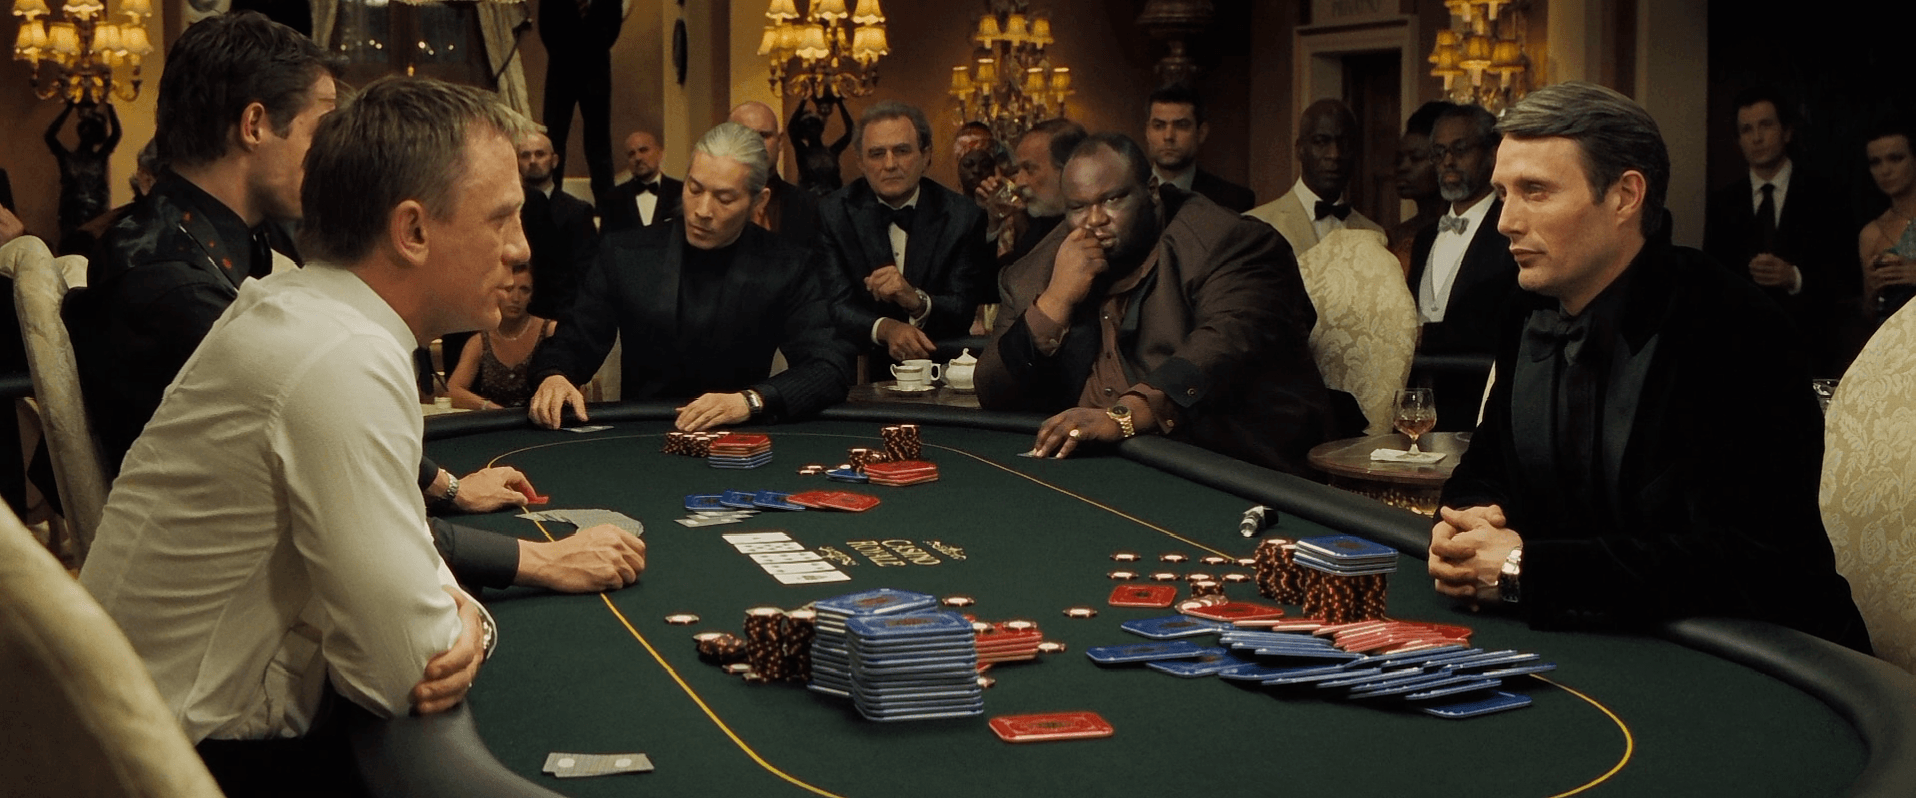 Joueuse de poker film what is a royal straight flush in poker